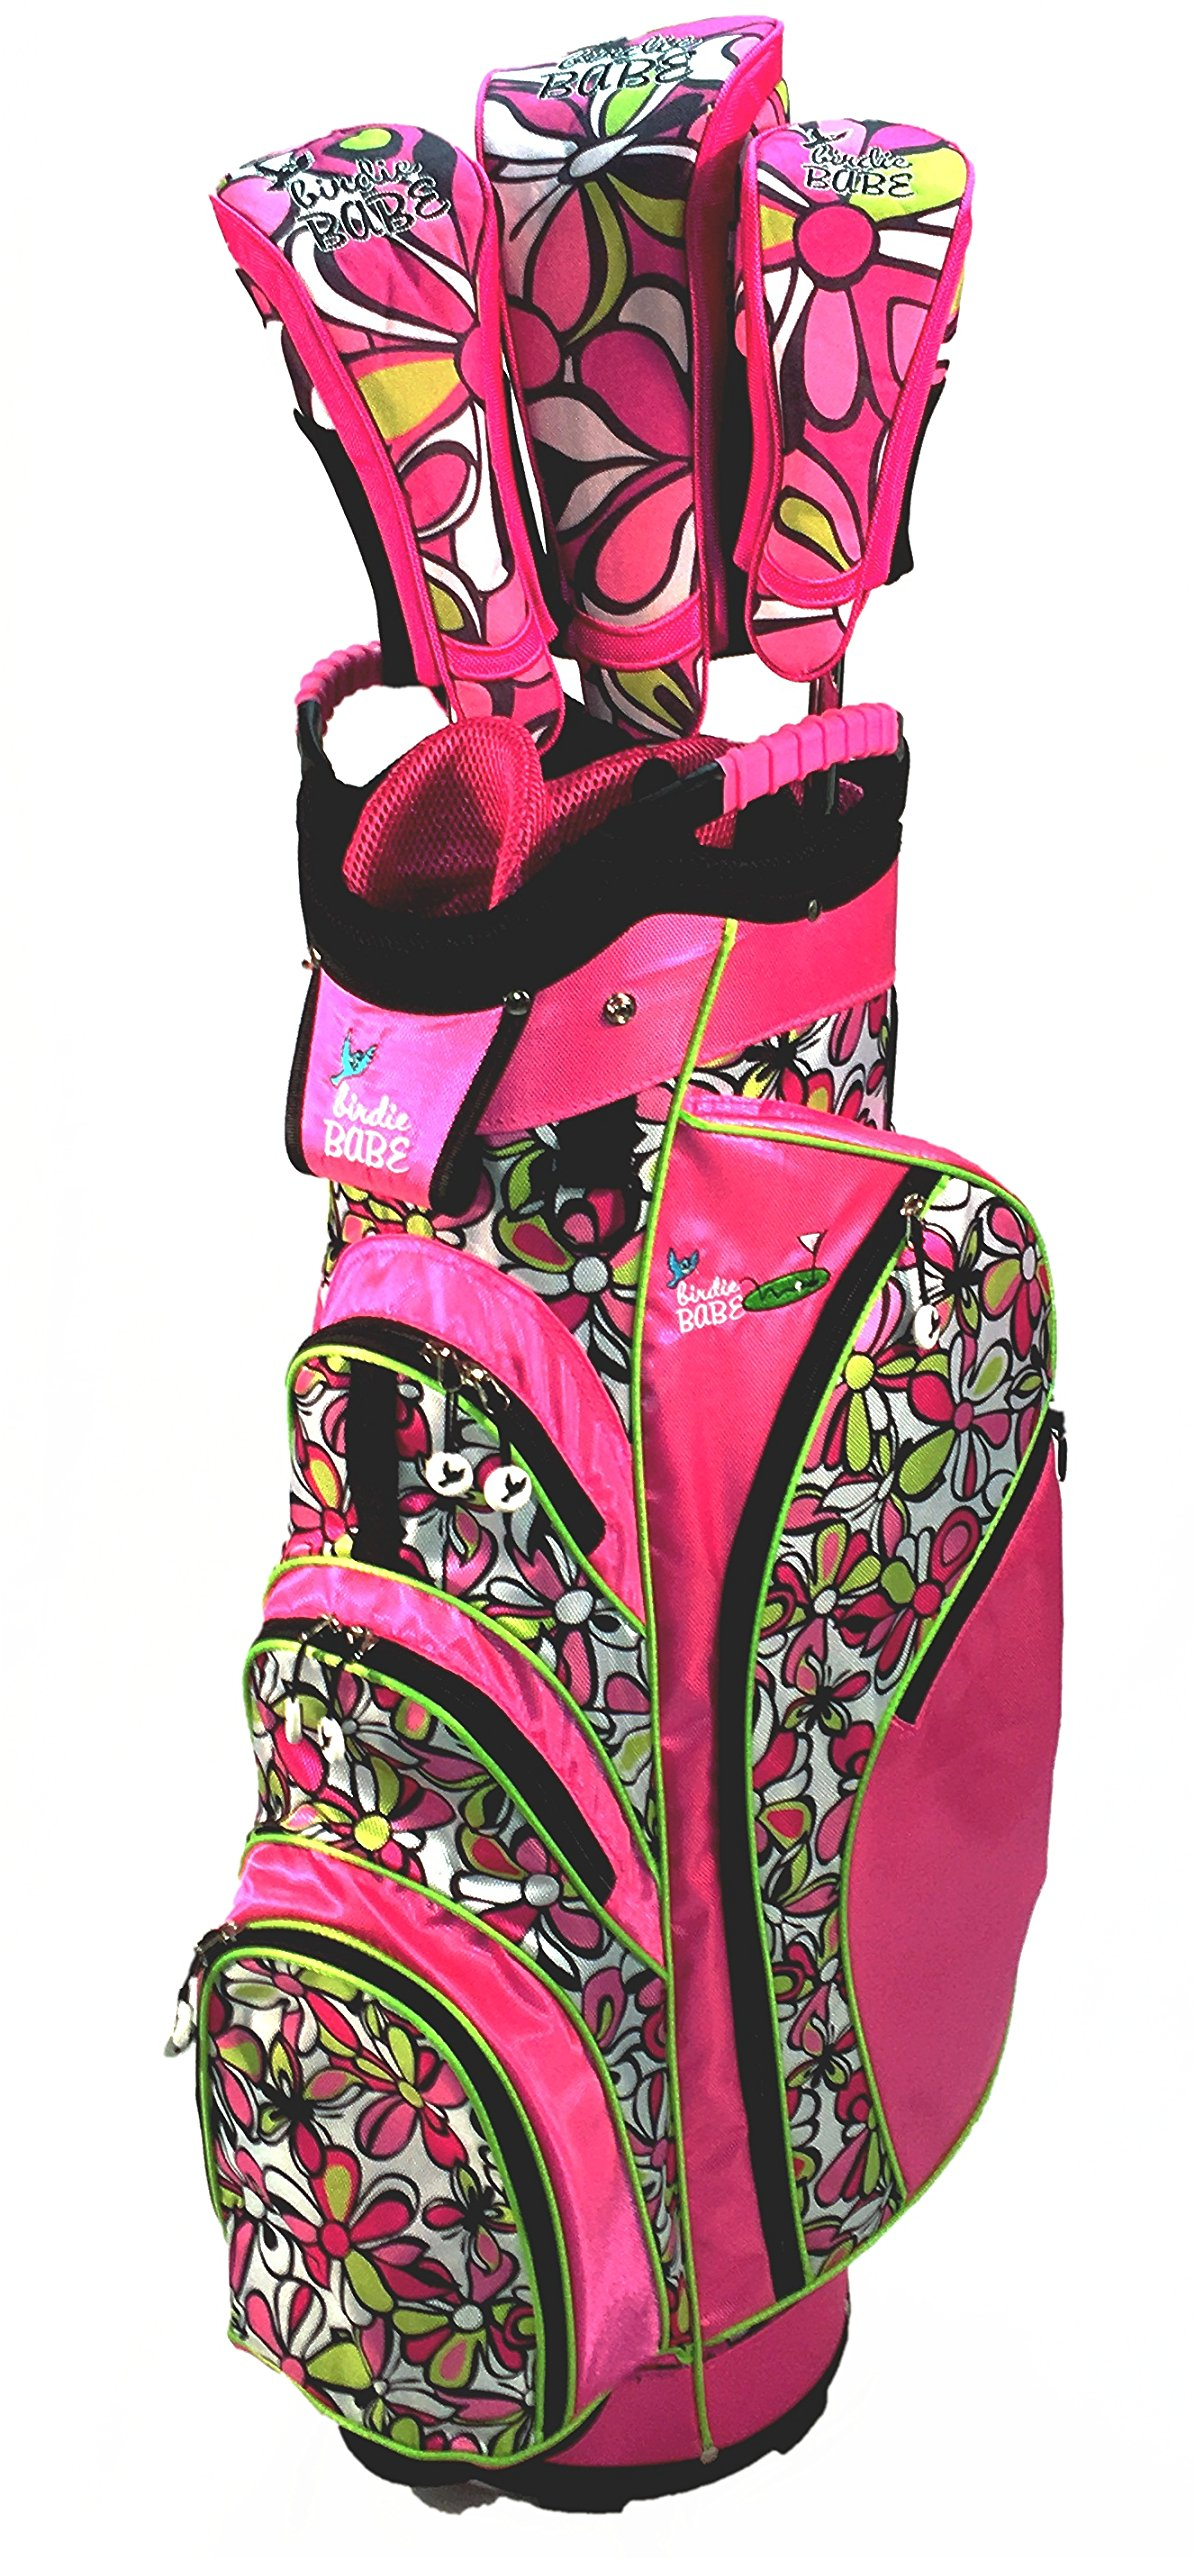 Birdie Babe Pink Flowered Womens Golf Cart Bag with Head Covers